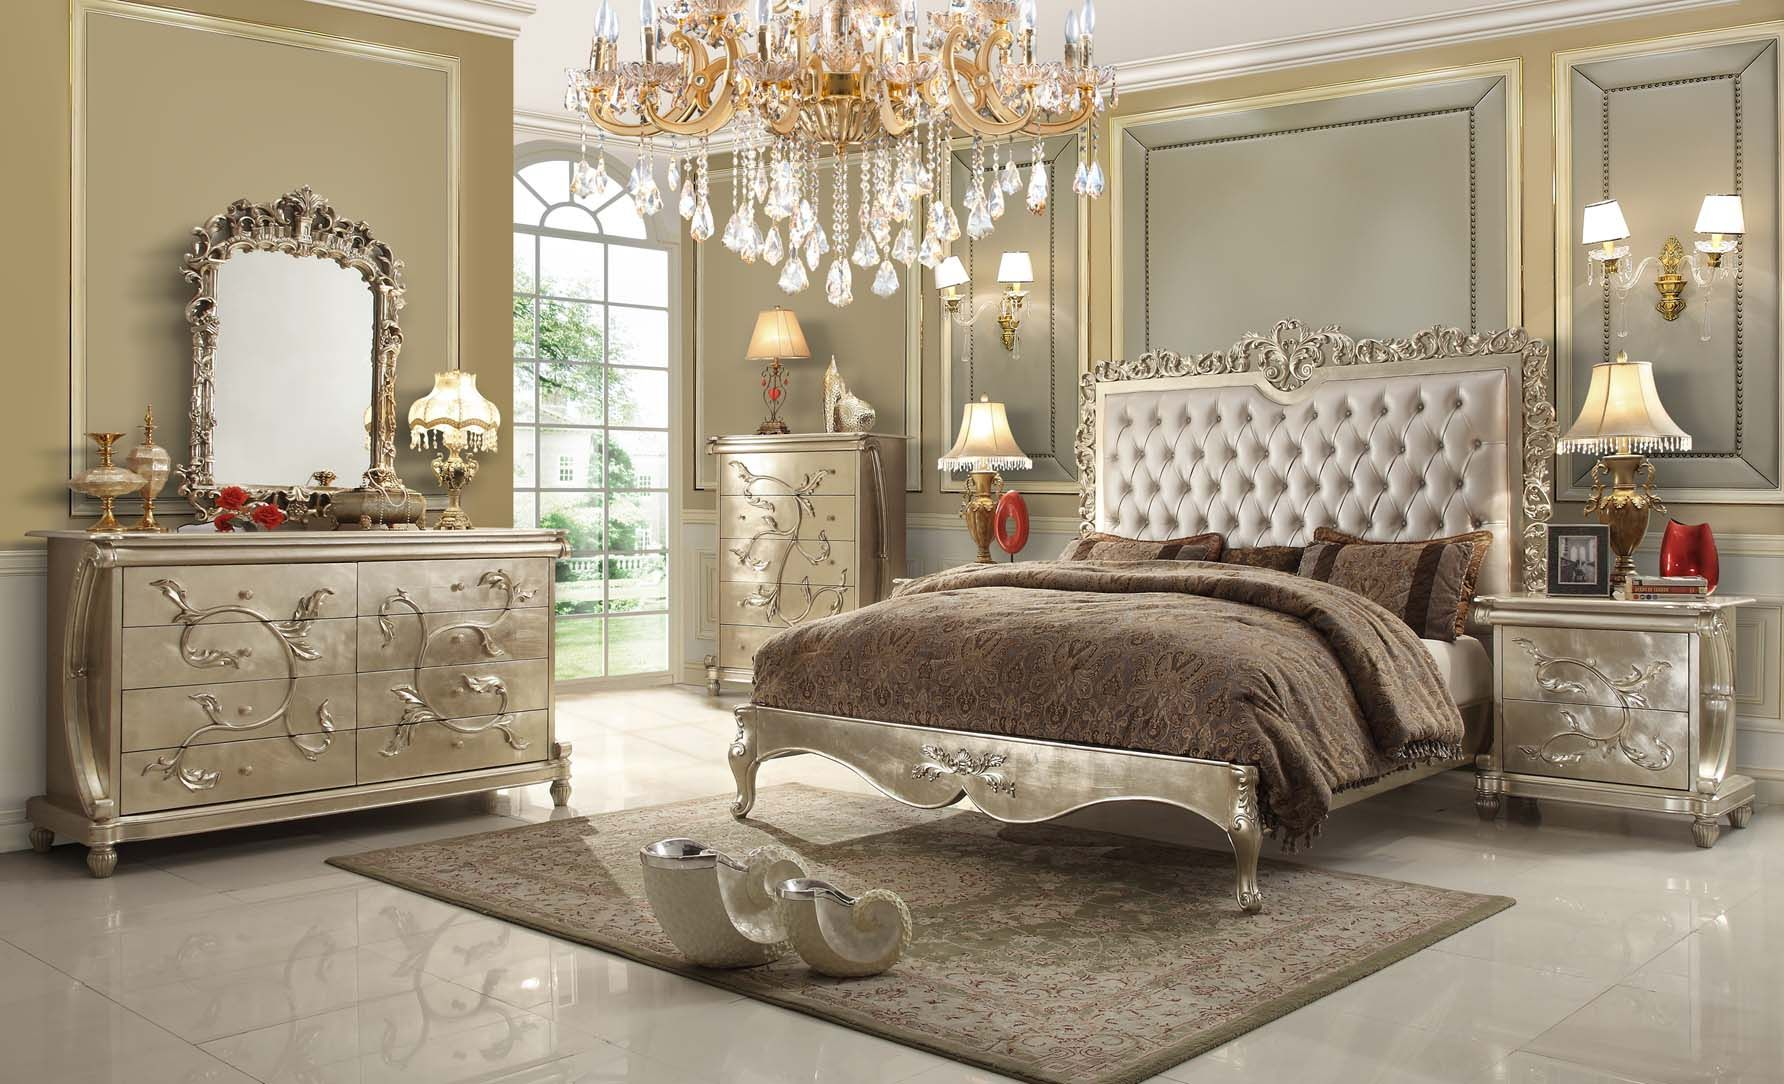 Hds Hd13005 Victorian Elegant Pearl Finish With Leather Tufted Headboard And Decorative Casegoods Bedroom Interior Traditional Bedroom Sets Luxurious Bedrooms